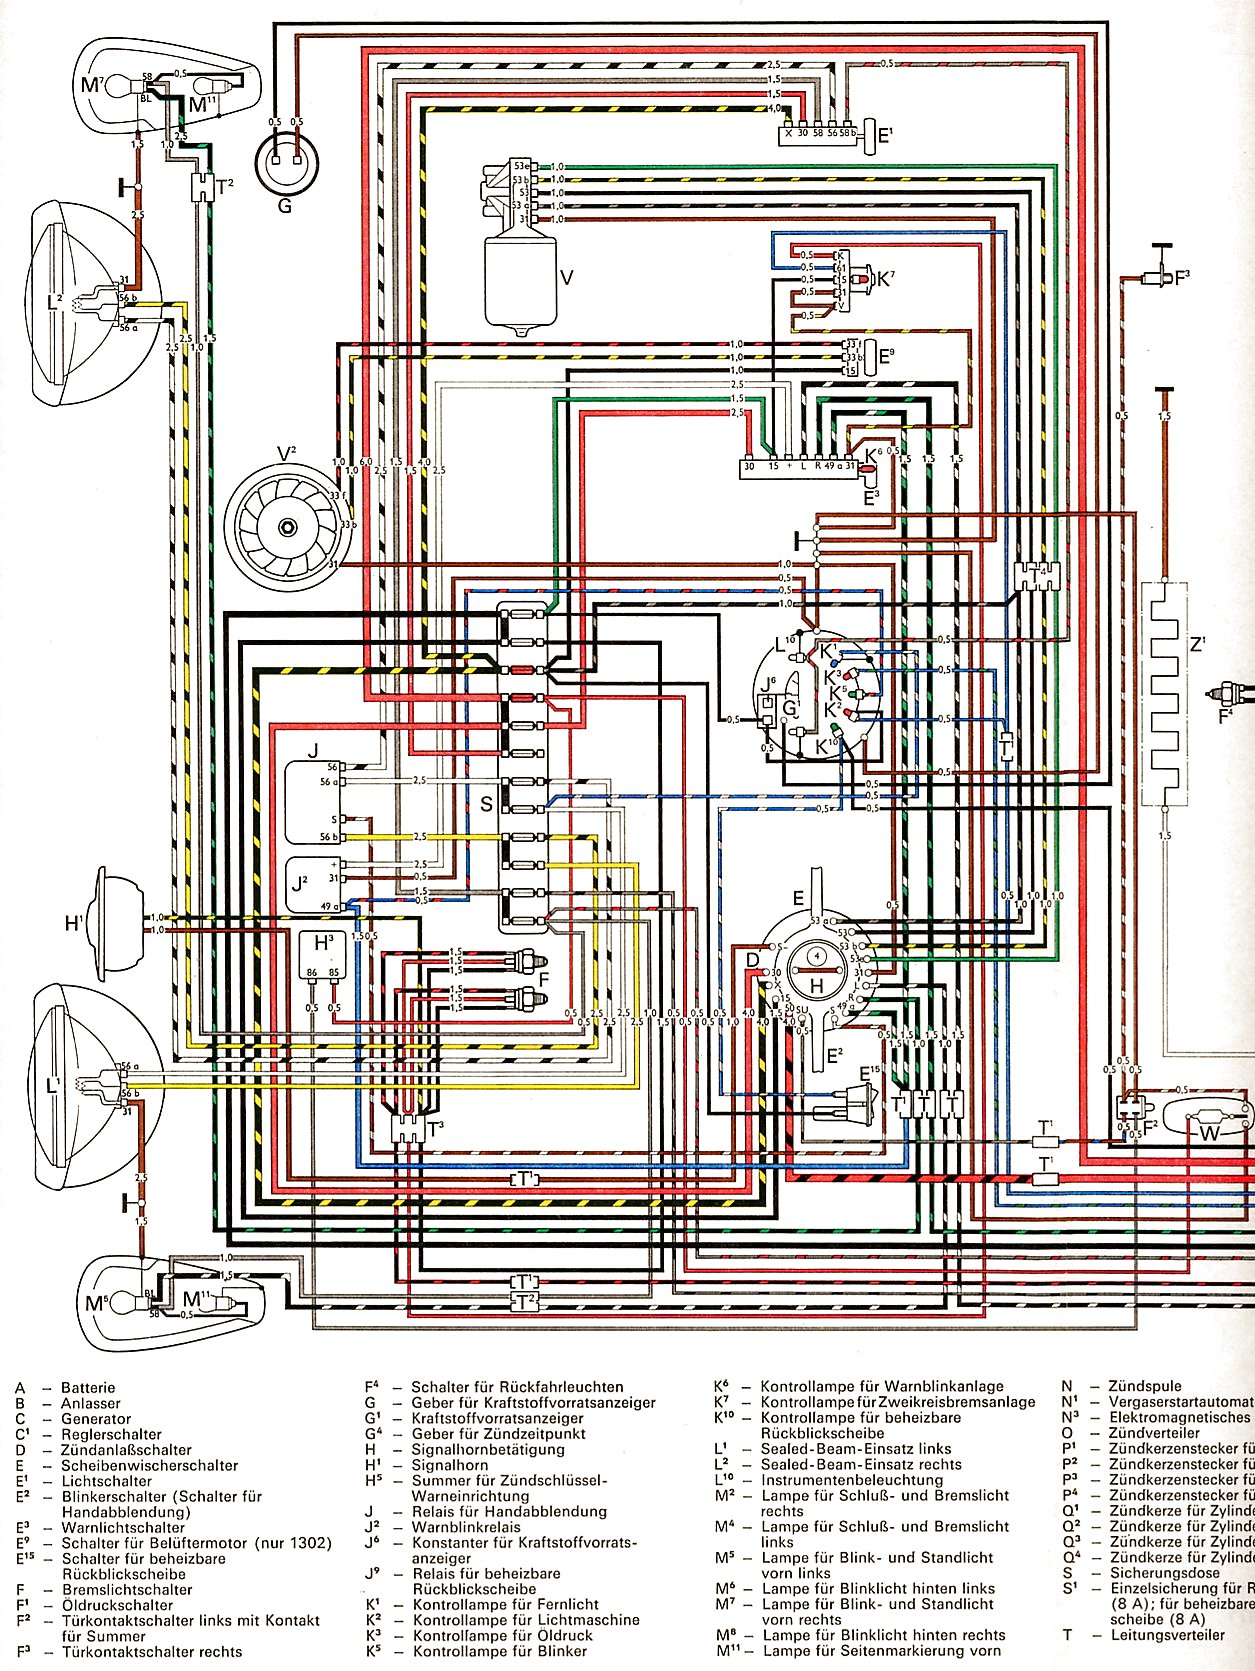 71 Super Beetle Wiring Diagram Just Another Blog Vw Alternator Bosch Fuse Box Arrangement Also 1971 Rh 20 Jennifer Retzke De 1972 1974